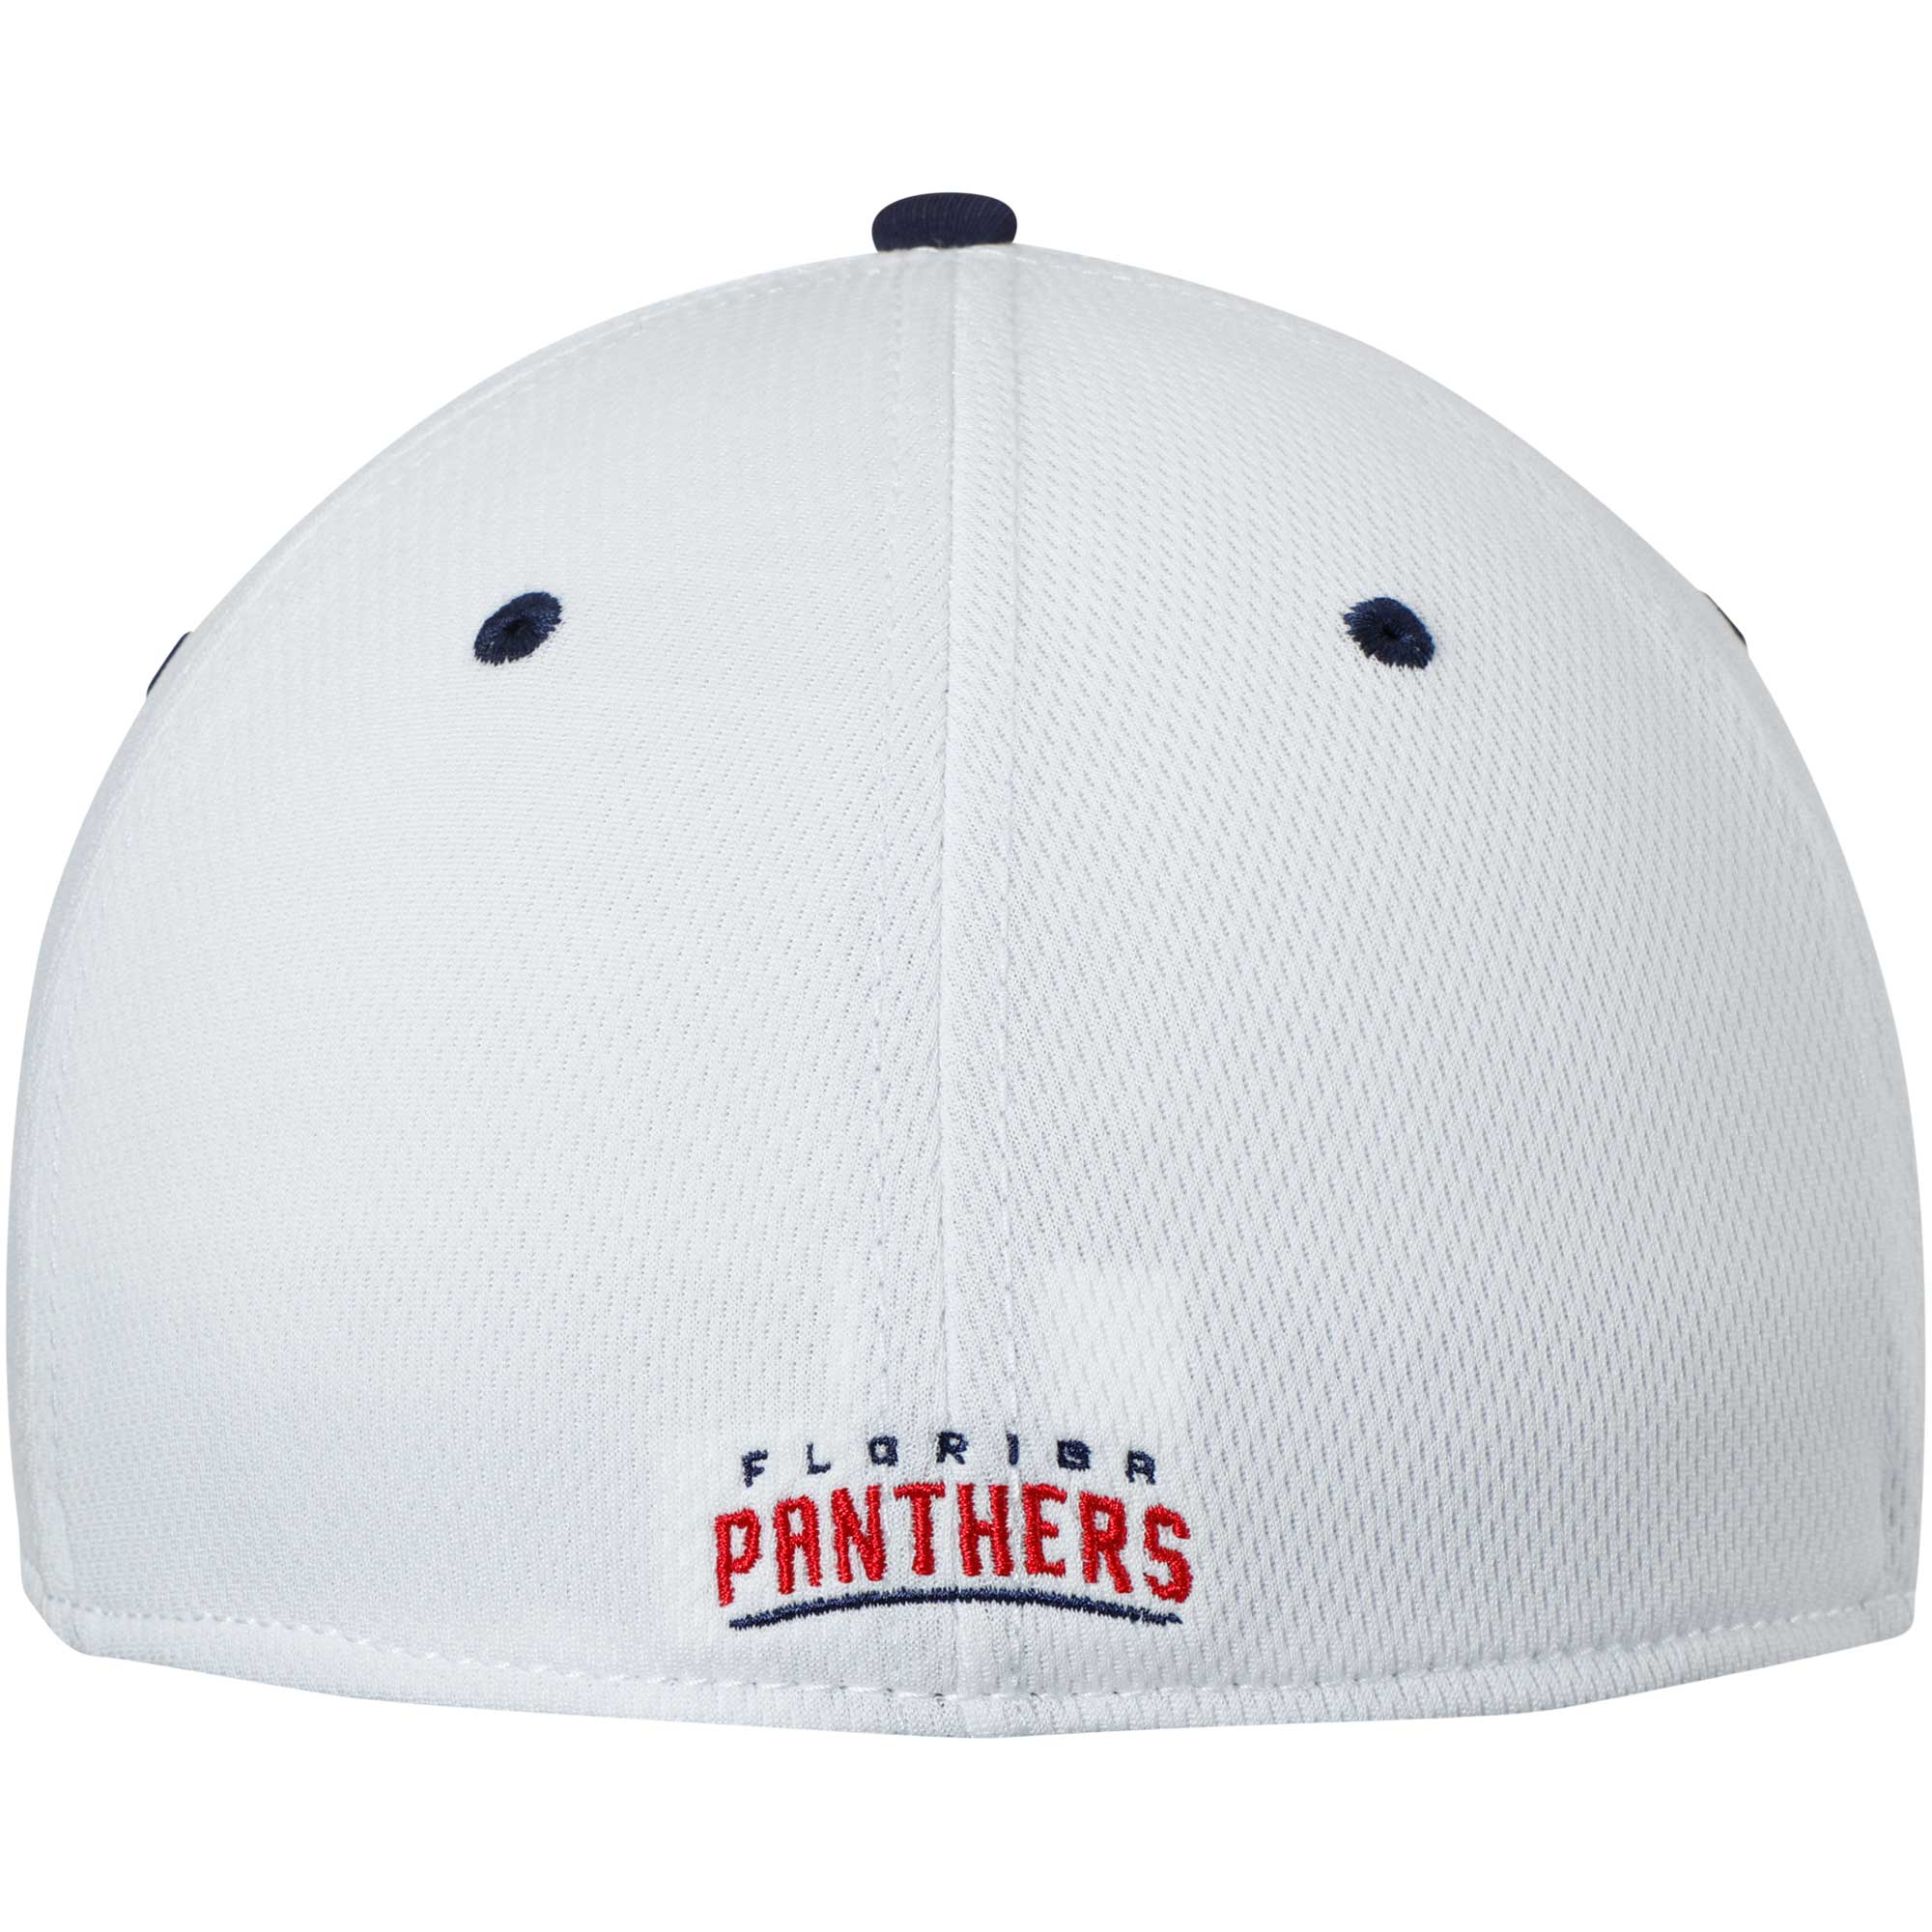 new product fdc47 5167f Florida Panthers Fanatics Branded Iconic Bold Speed Stretch Fit Flex Hat -  Navy White - Walmart.com